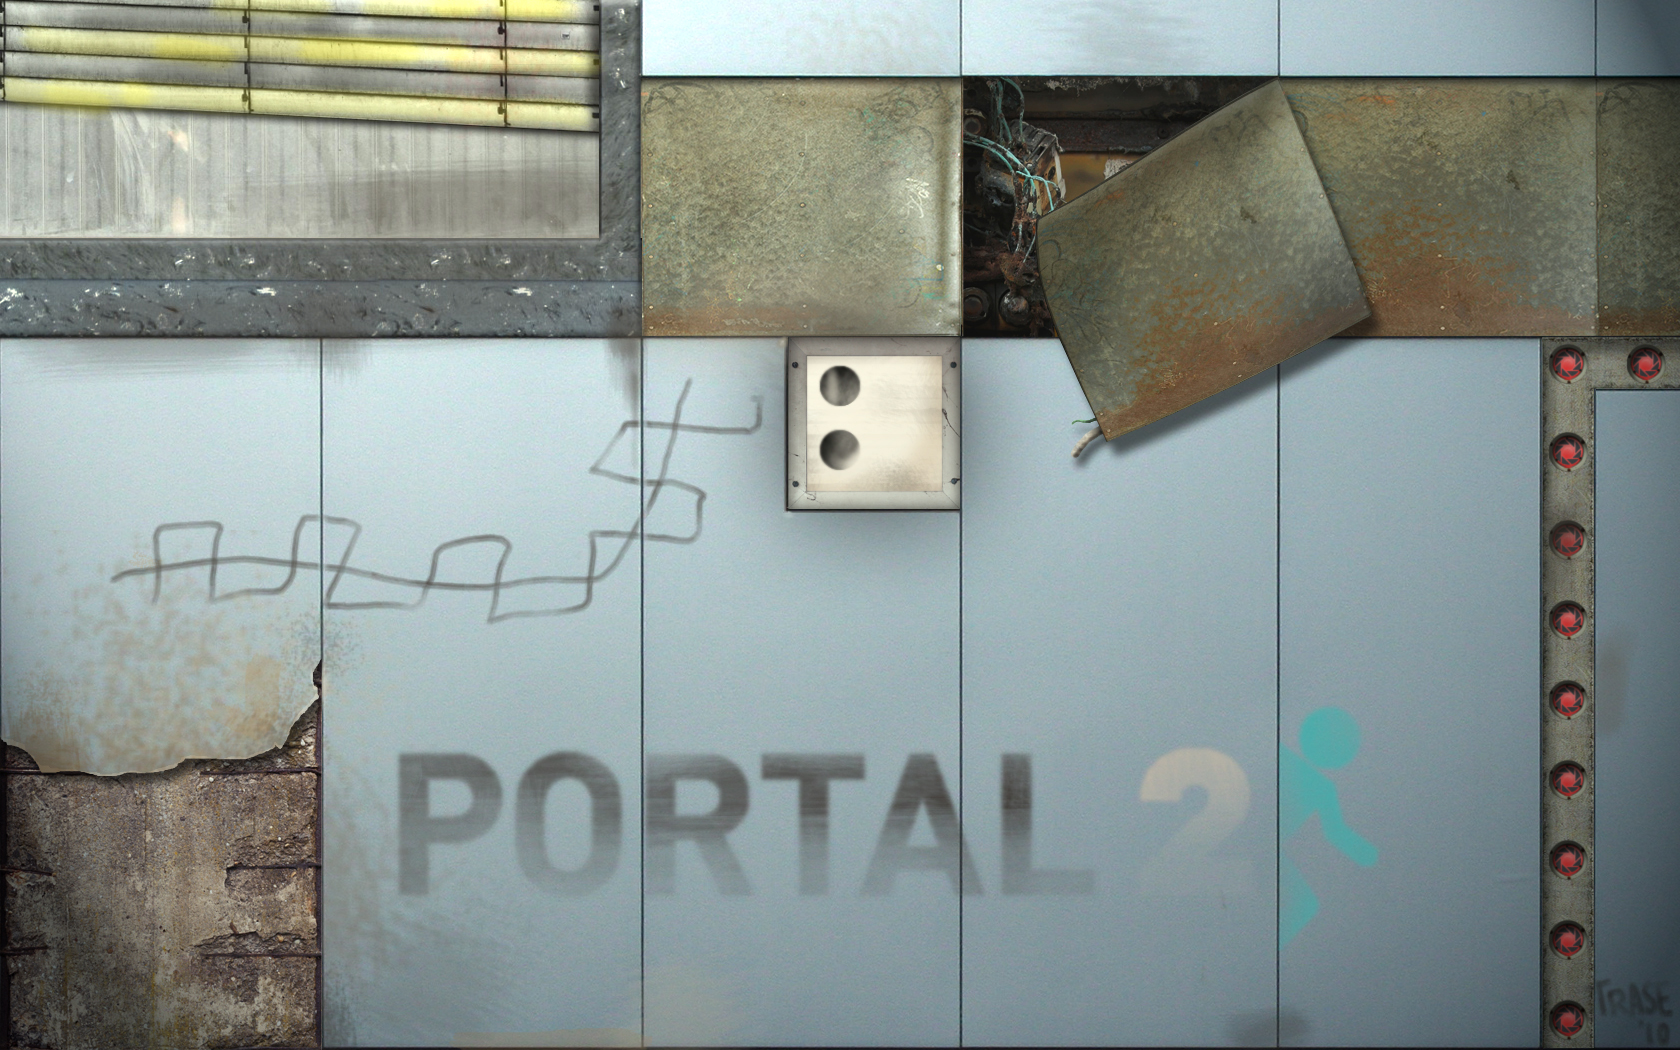 Portal 2 wallpaper from completely unreleated images